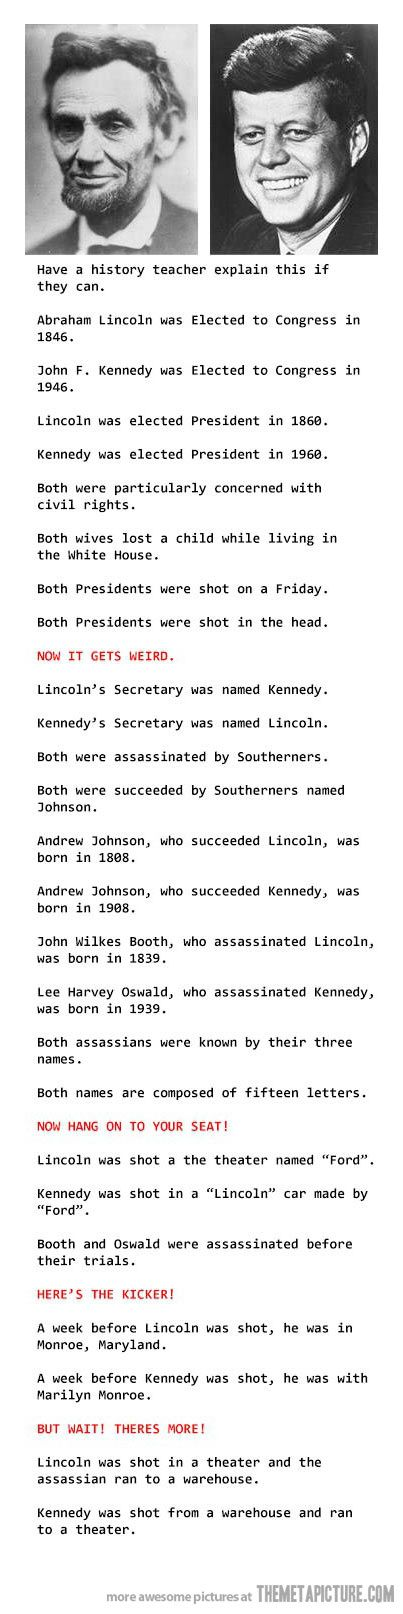 Mind blowing coincidences… so glad I found this, I heard about it